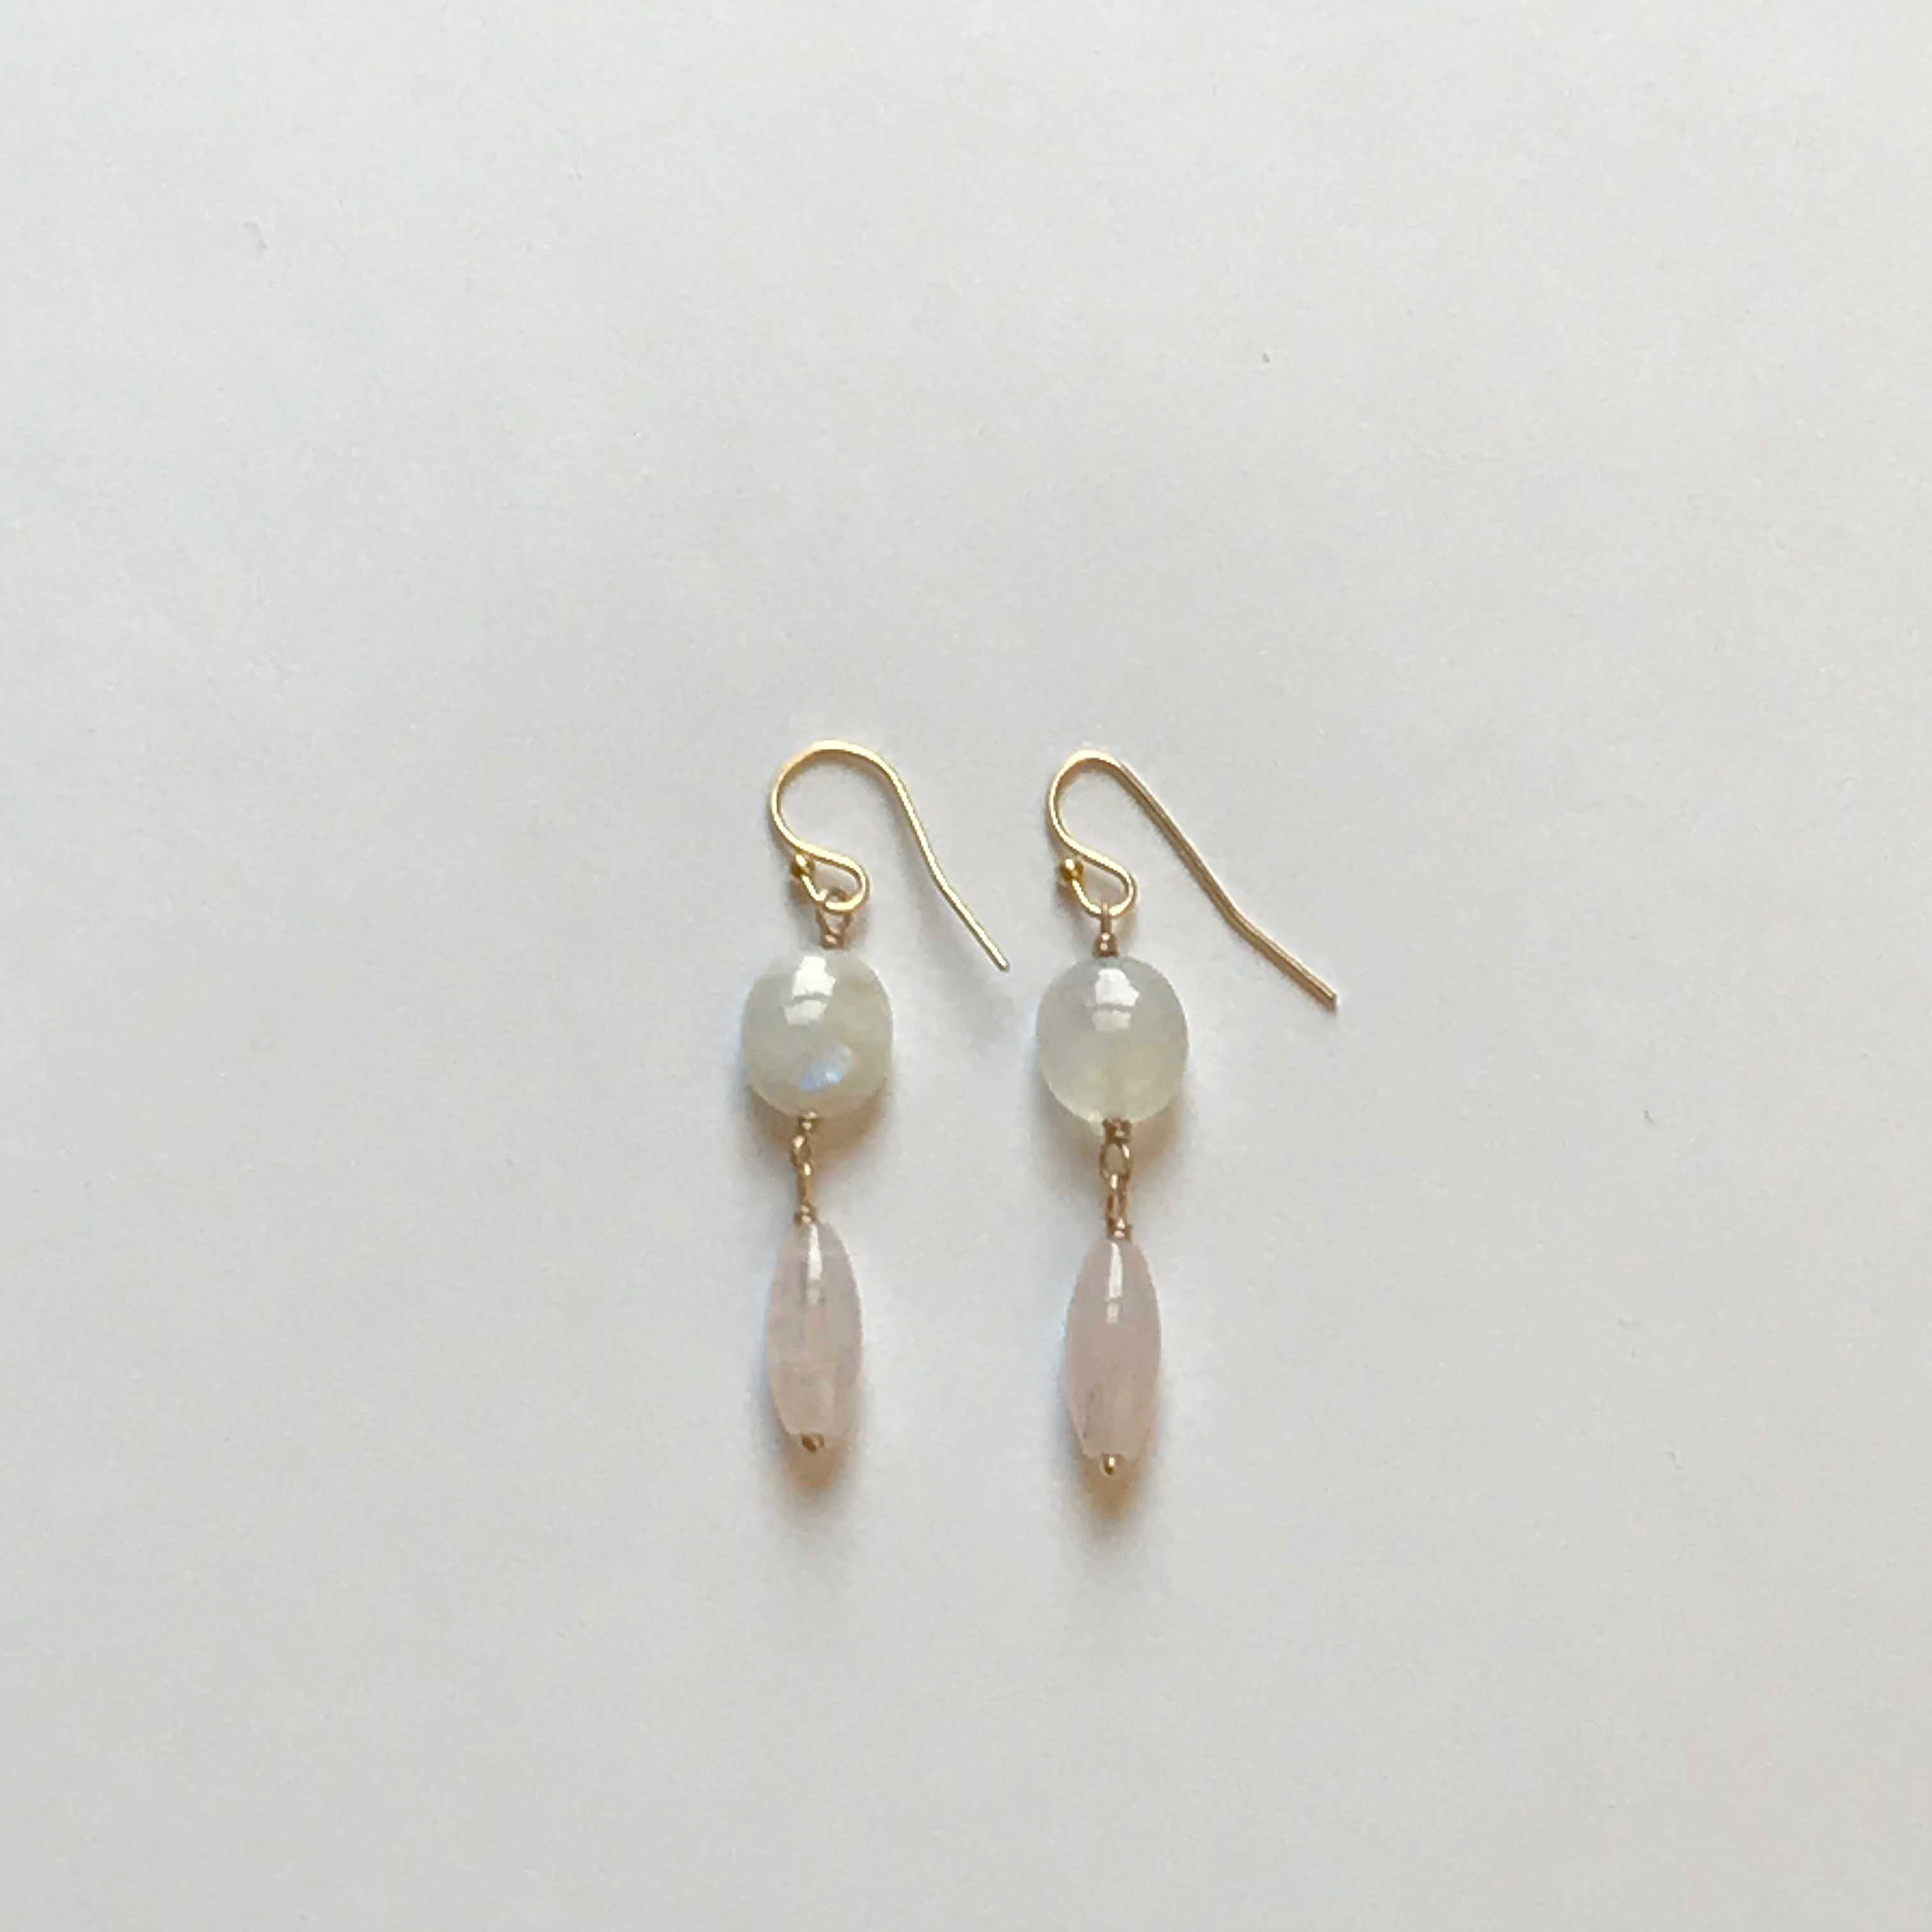 $155 Gold Filled Rainbow Moonstone Rose Quartz Earrings